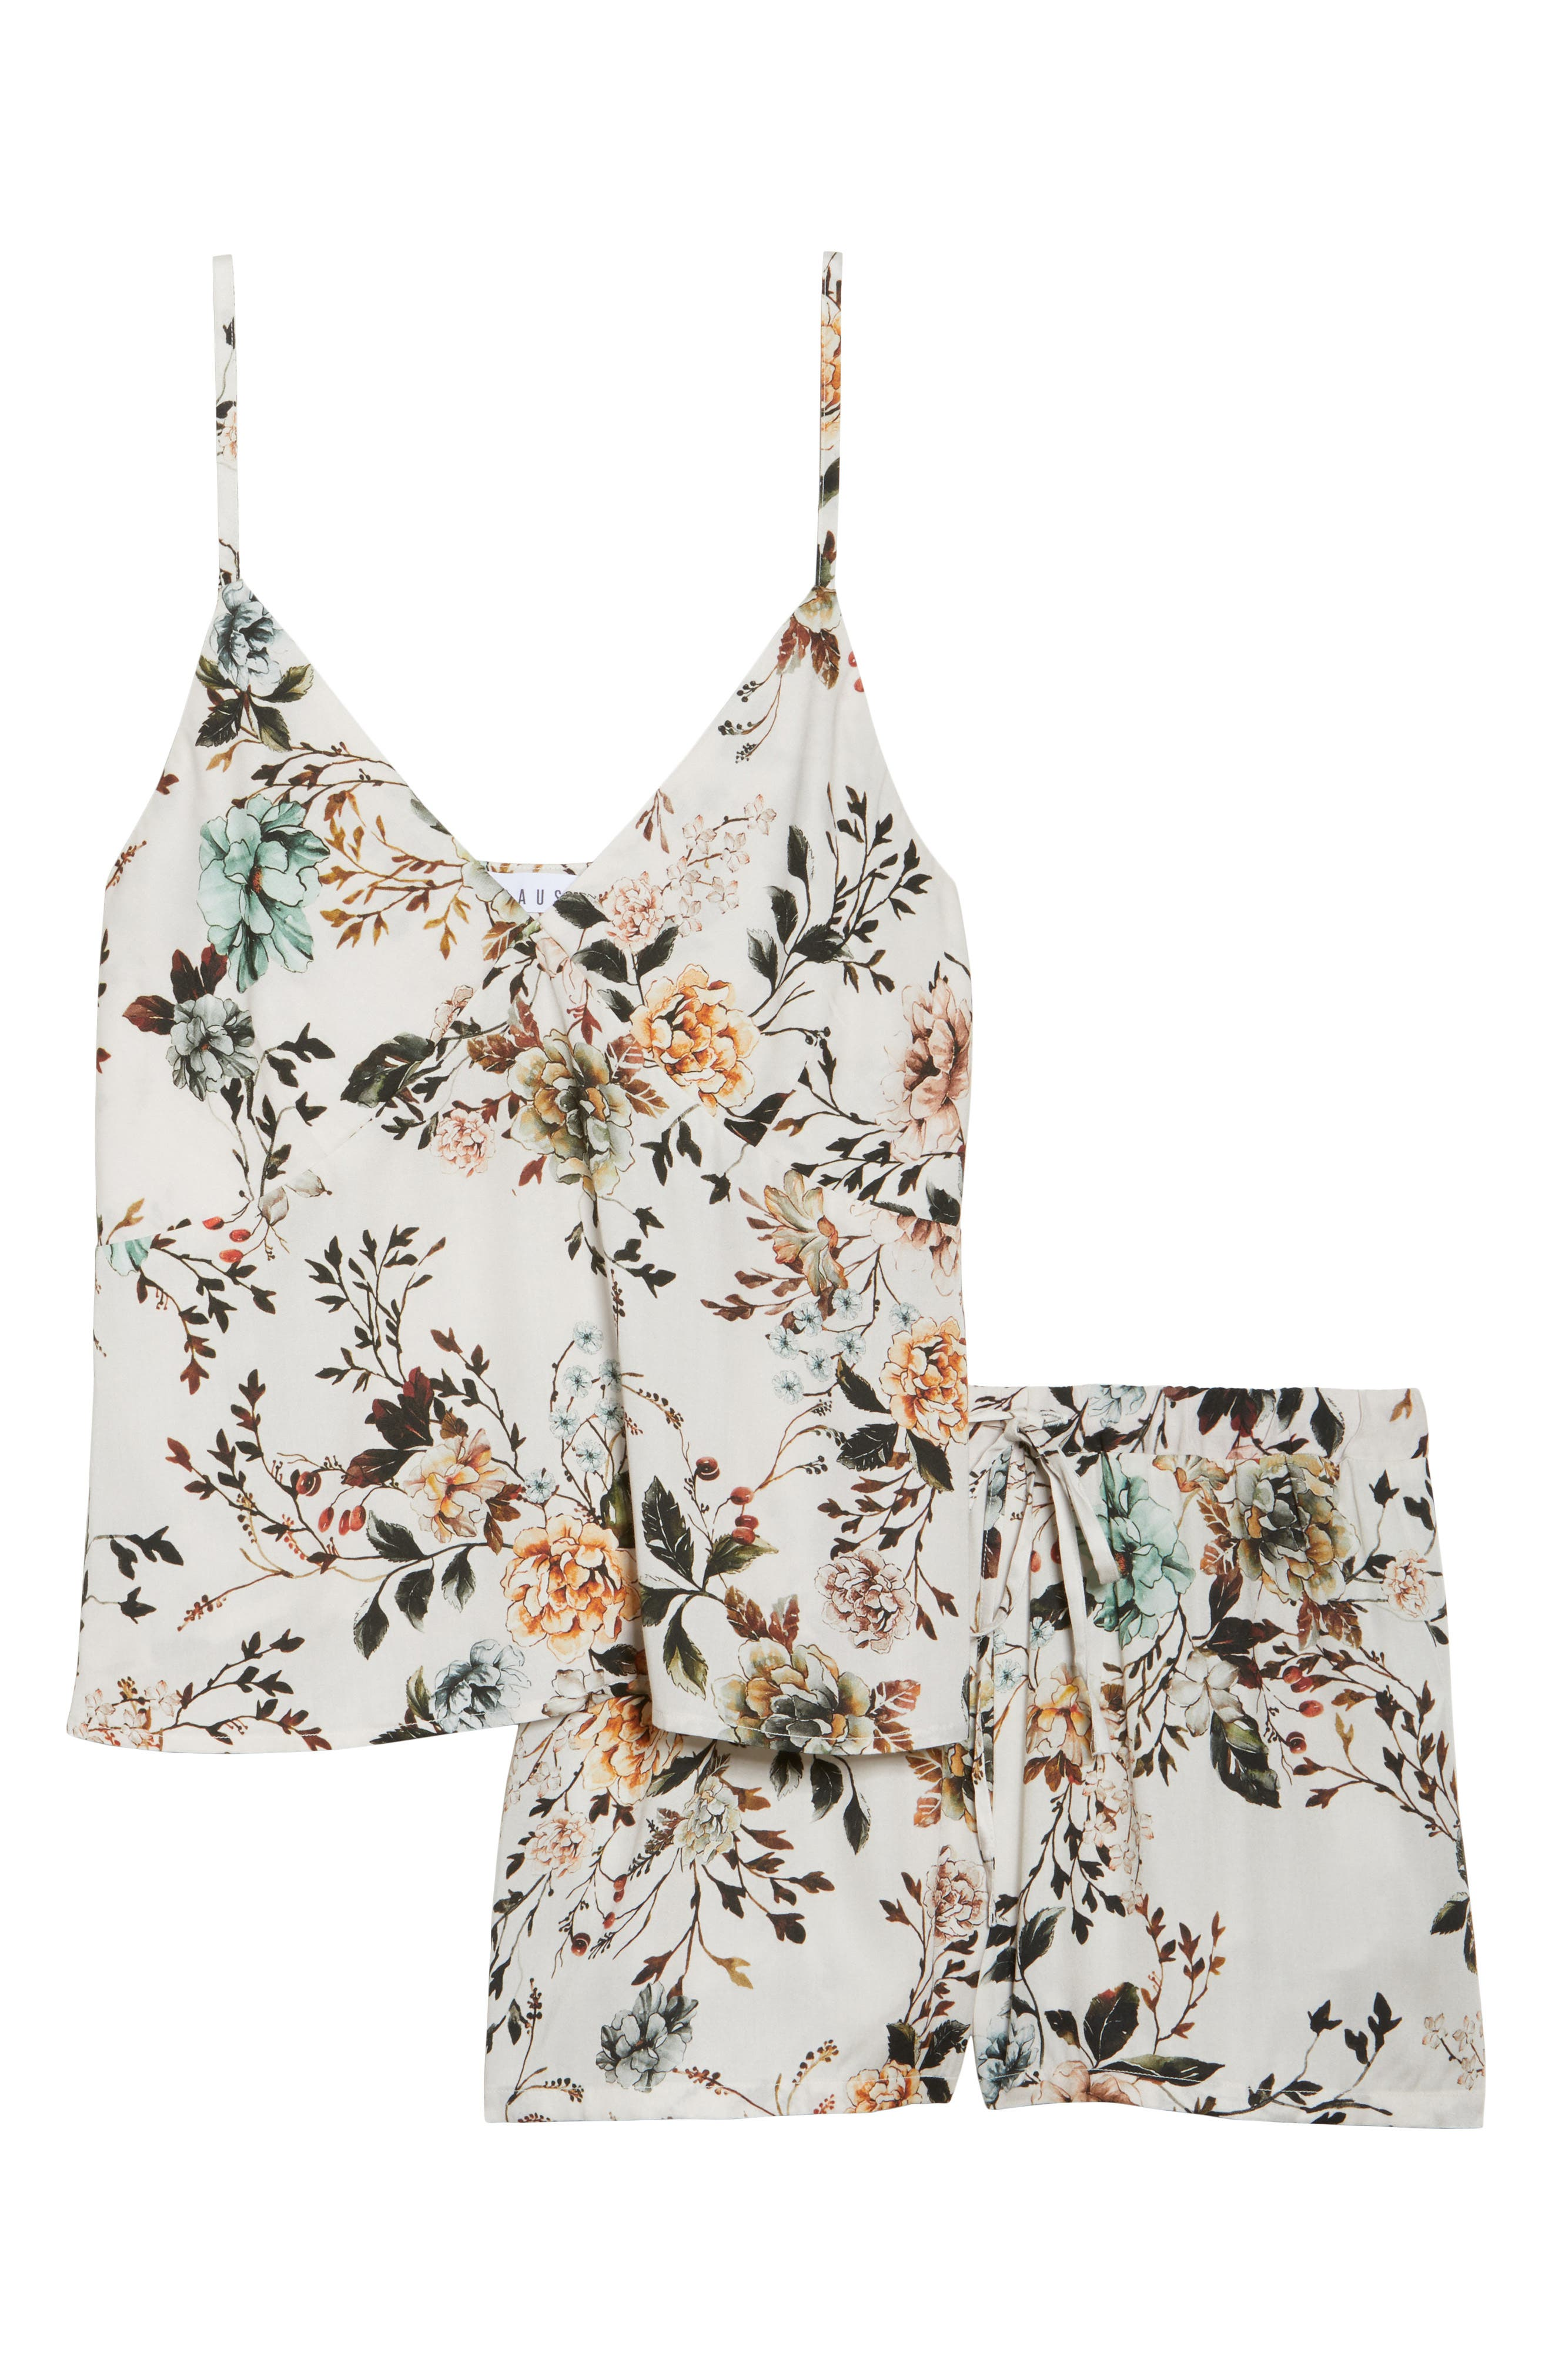 Floral Poppy Short & Camisole Pajamas,                             Alternate thumbnail 6, color,                             250